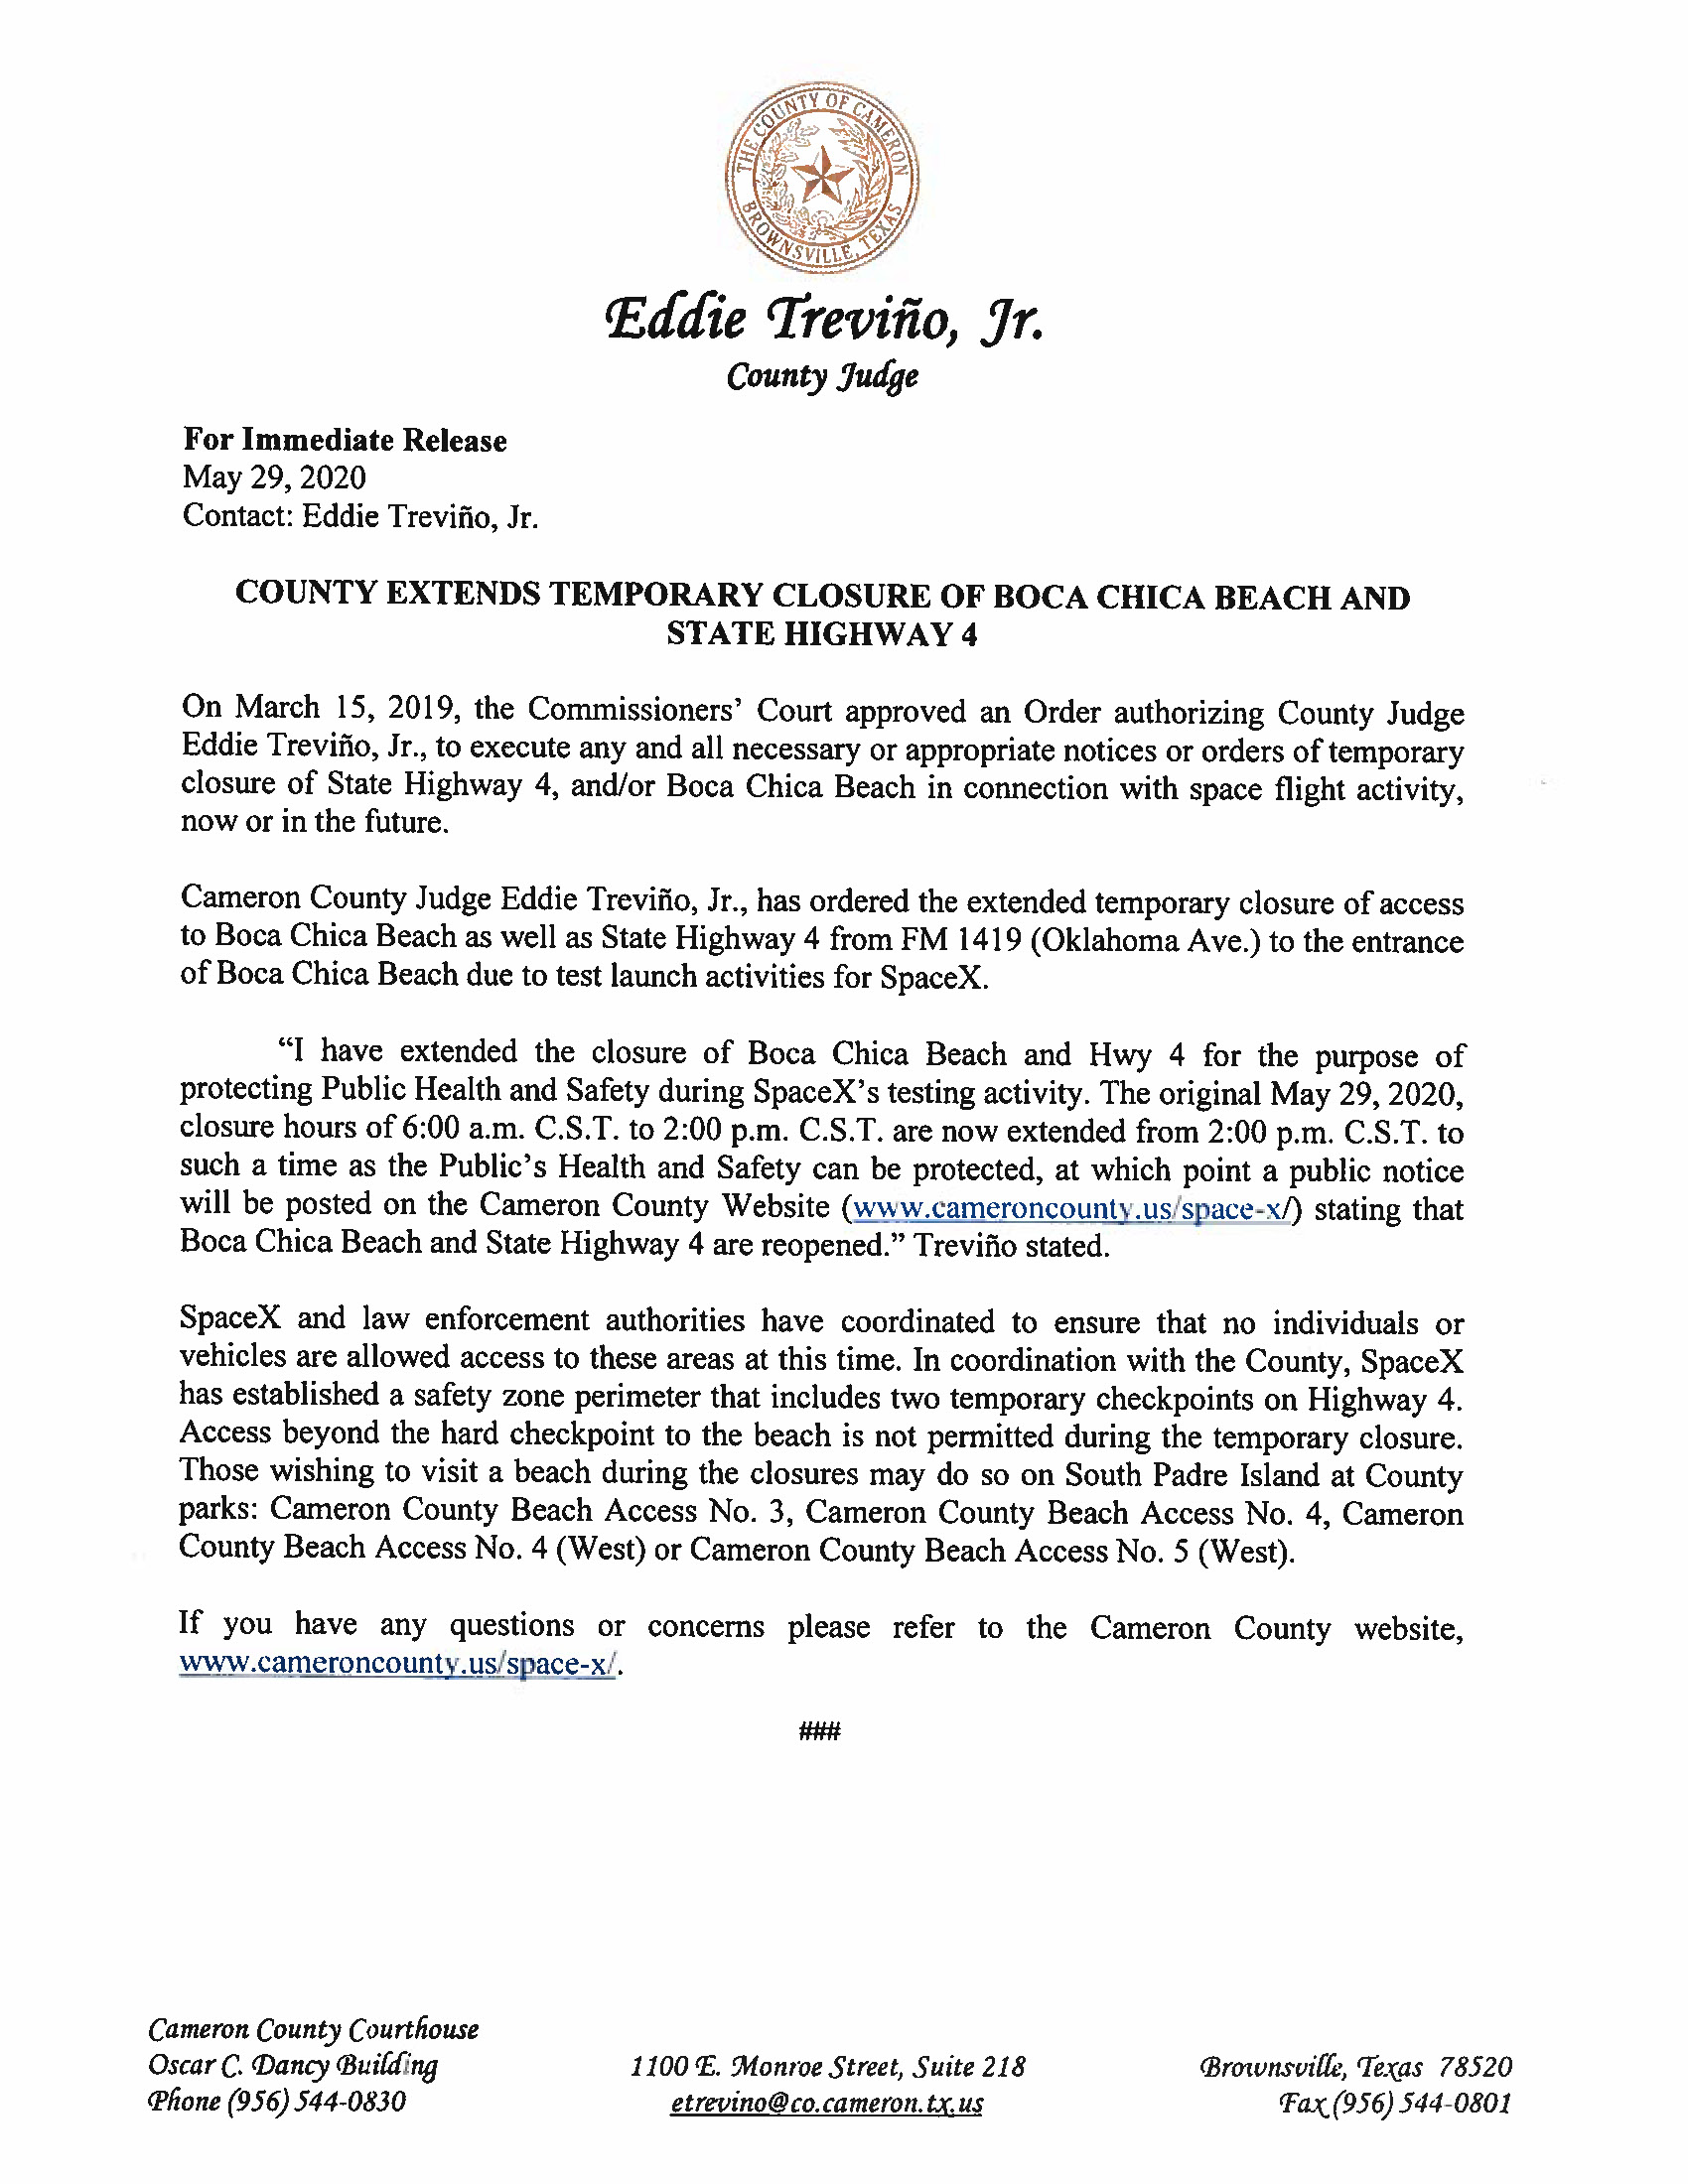 Press Release In English And Spanish.05.29.20 Page 1